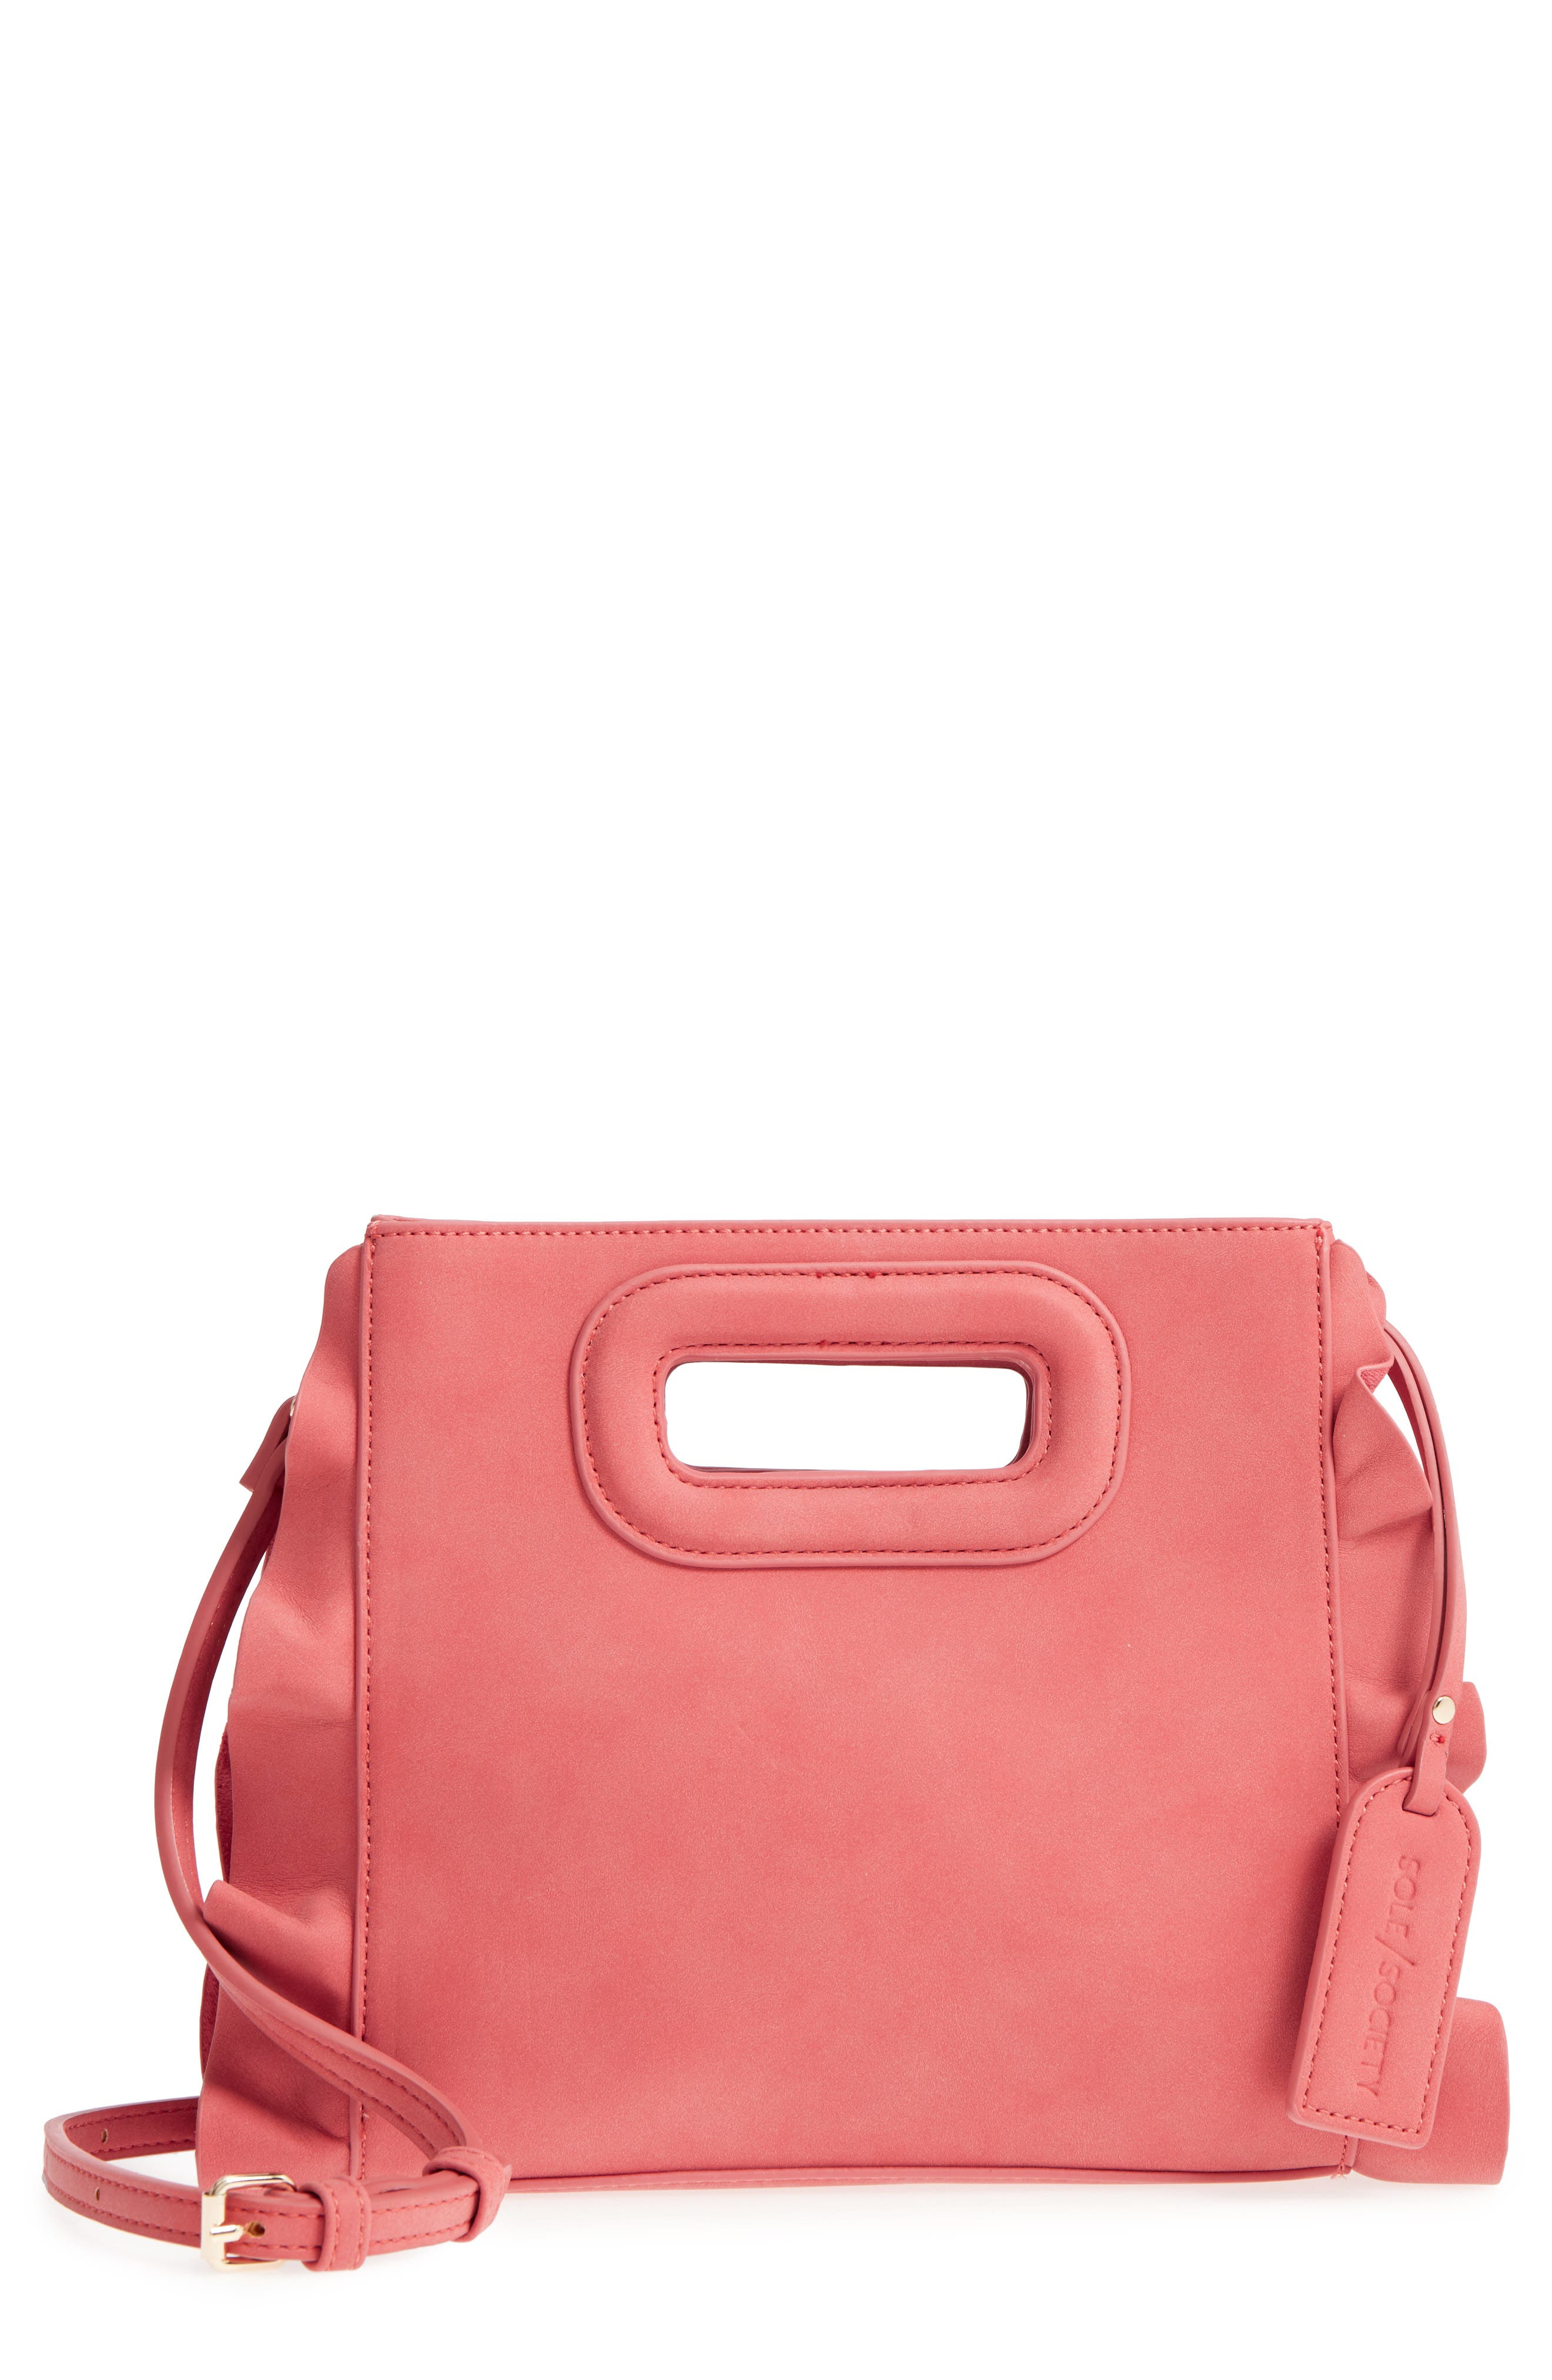 Faux Leather Crossbody Bag,                             Main thumbnail 1, color,                             Ginger Spice